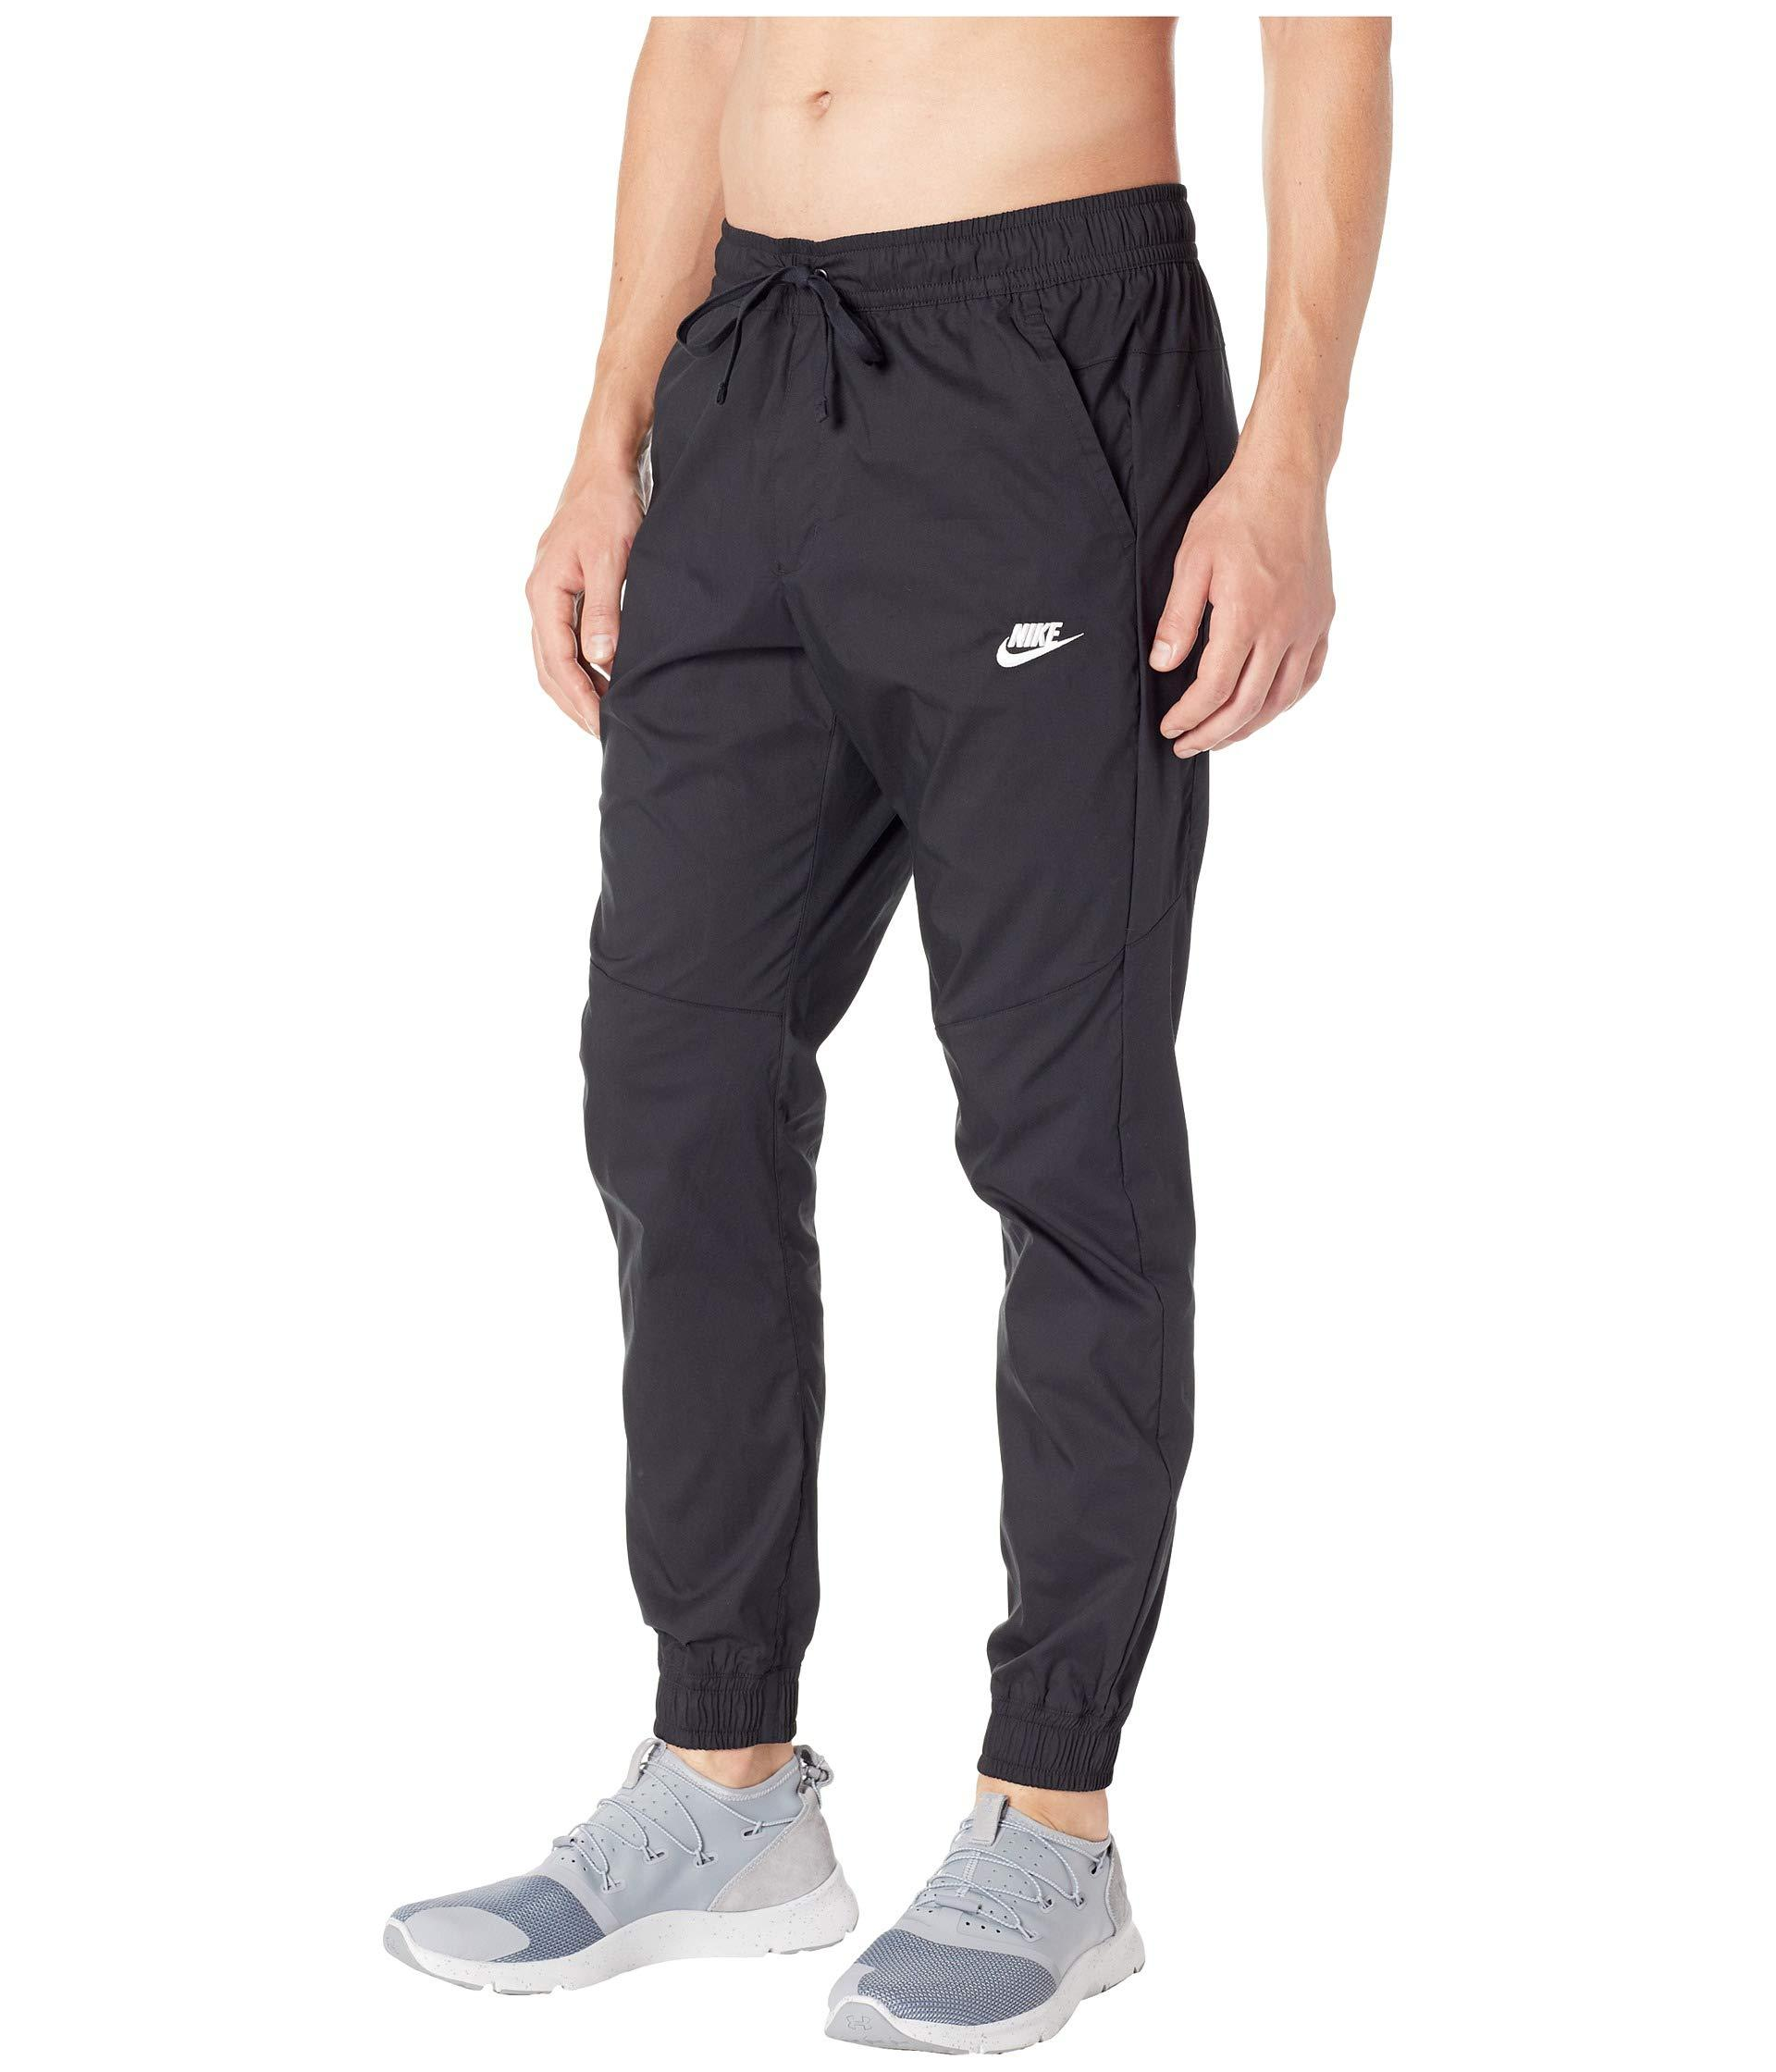 4a67b13f6f8 Lyst - Nike Nsw Jogger Woven Core Street in Black for Men